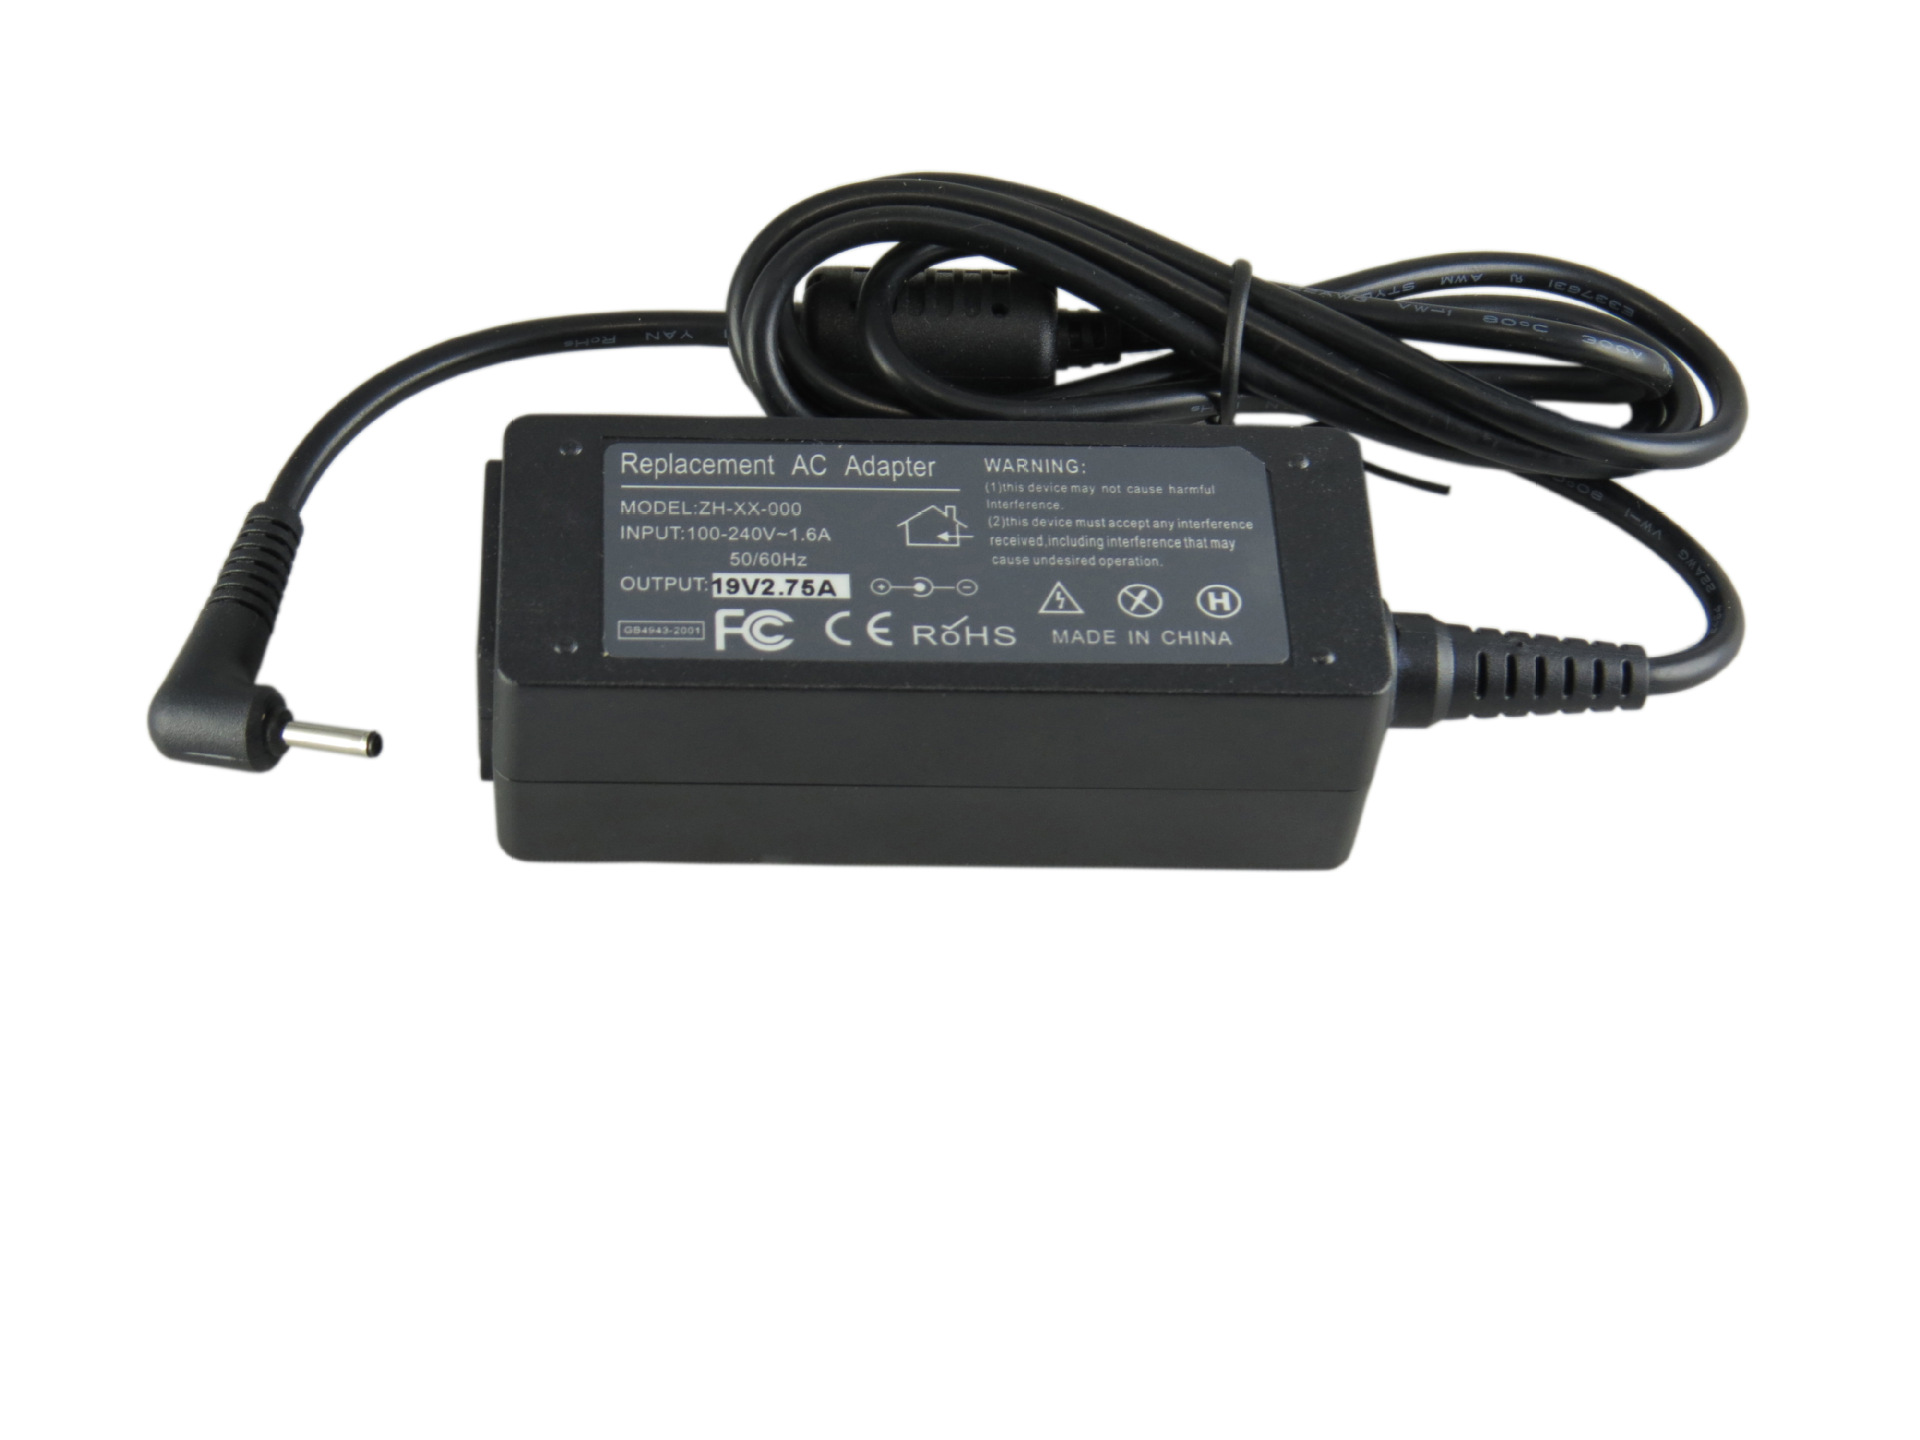 19V 2.1A 40W AC Laptop Power adaptor լիցքավորիչի համար ASUS Eee PC 1001HA 1001P 1001PX 1005HA 1101HA 1008HA 2.5 մմ * 0.7 մմ